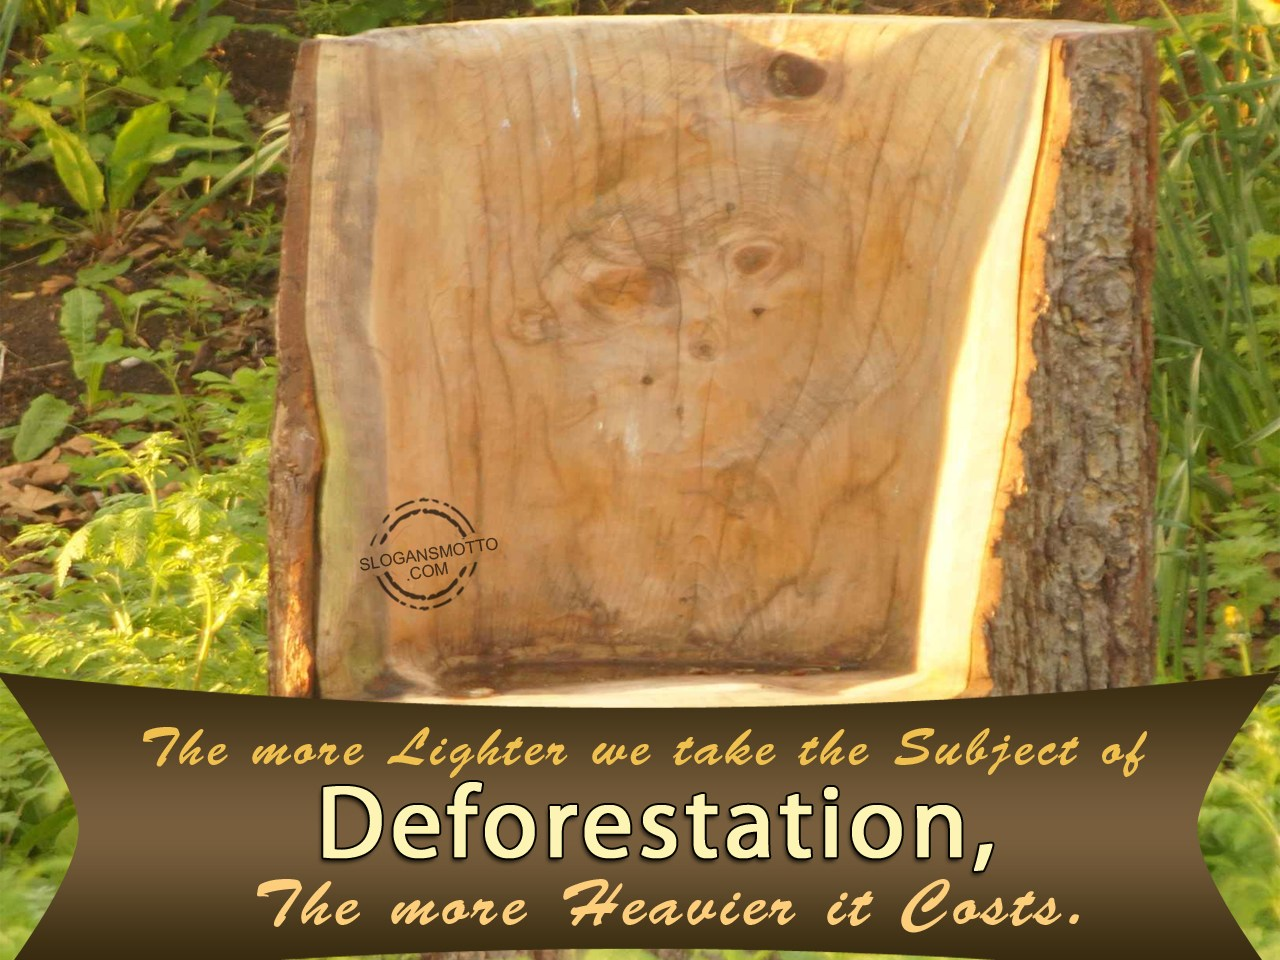 deforestation essay spm Questions are based on the following passage deforestation is the cutting or burning down of all the trees in a forest and the conversion of forested areas to non- forest land for use such as arable land or pasture, or for urban use.